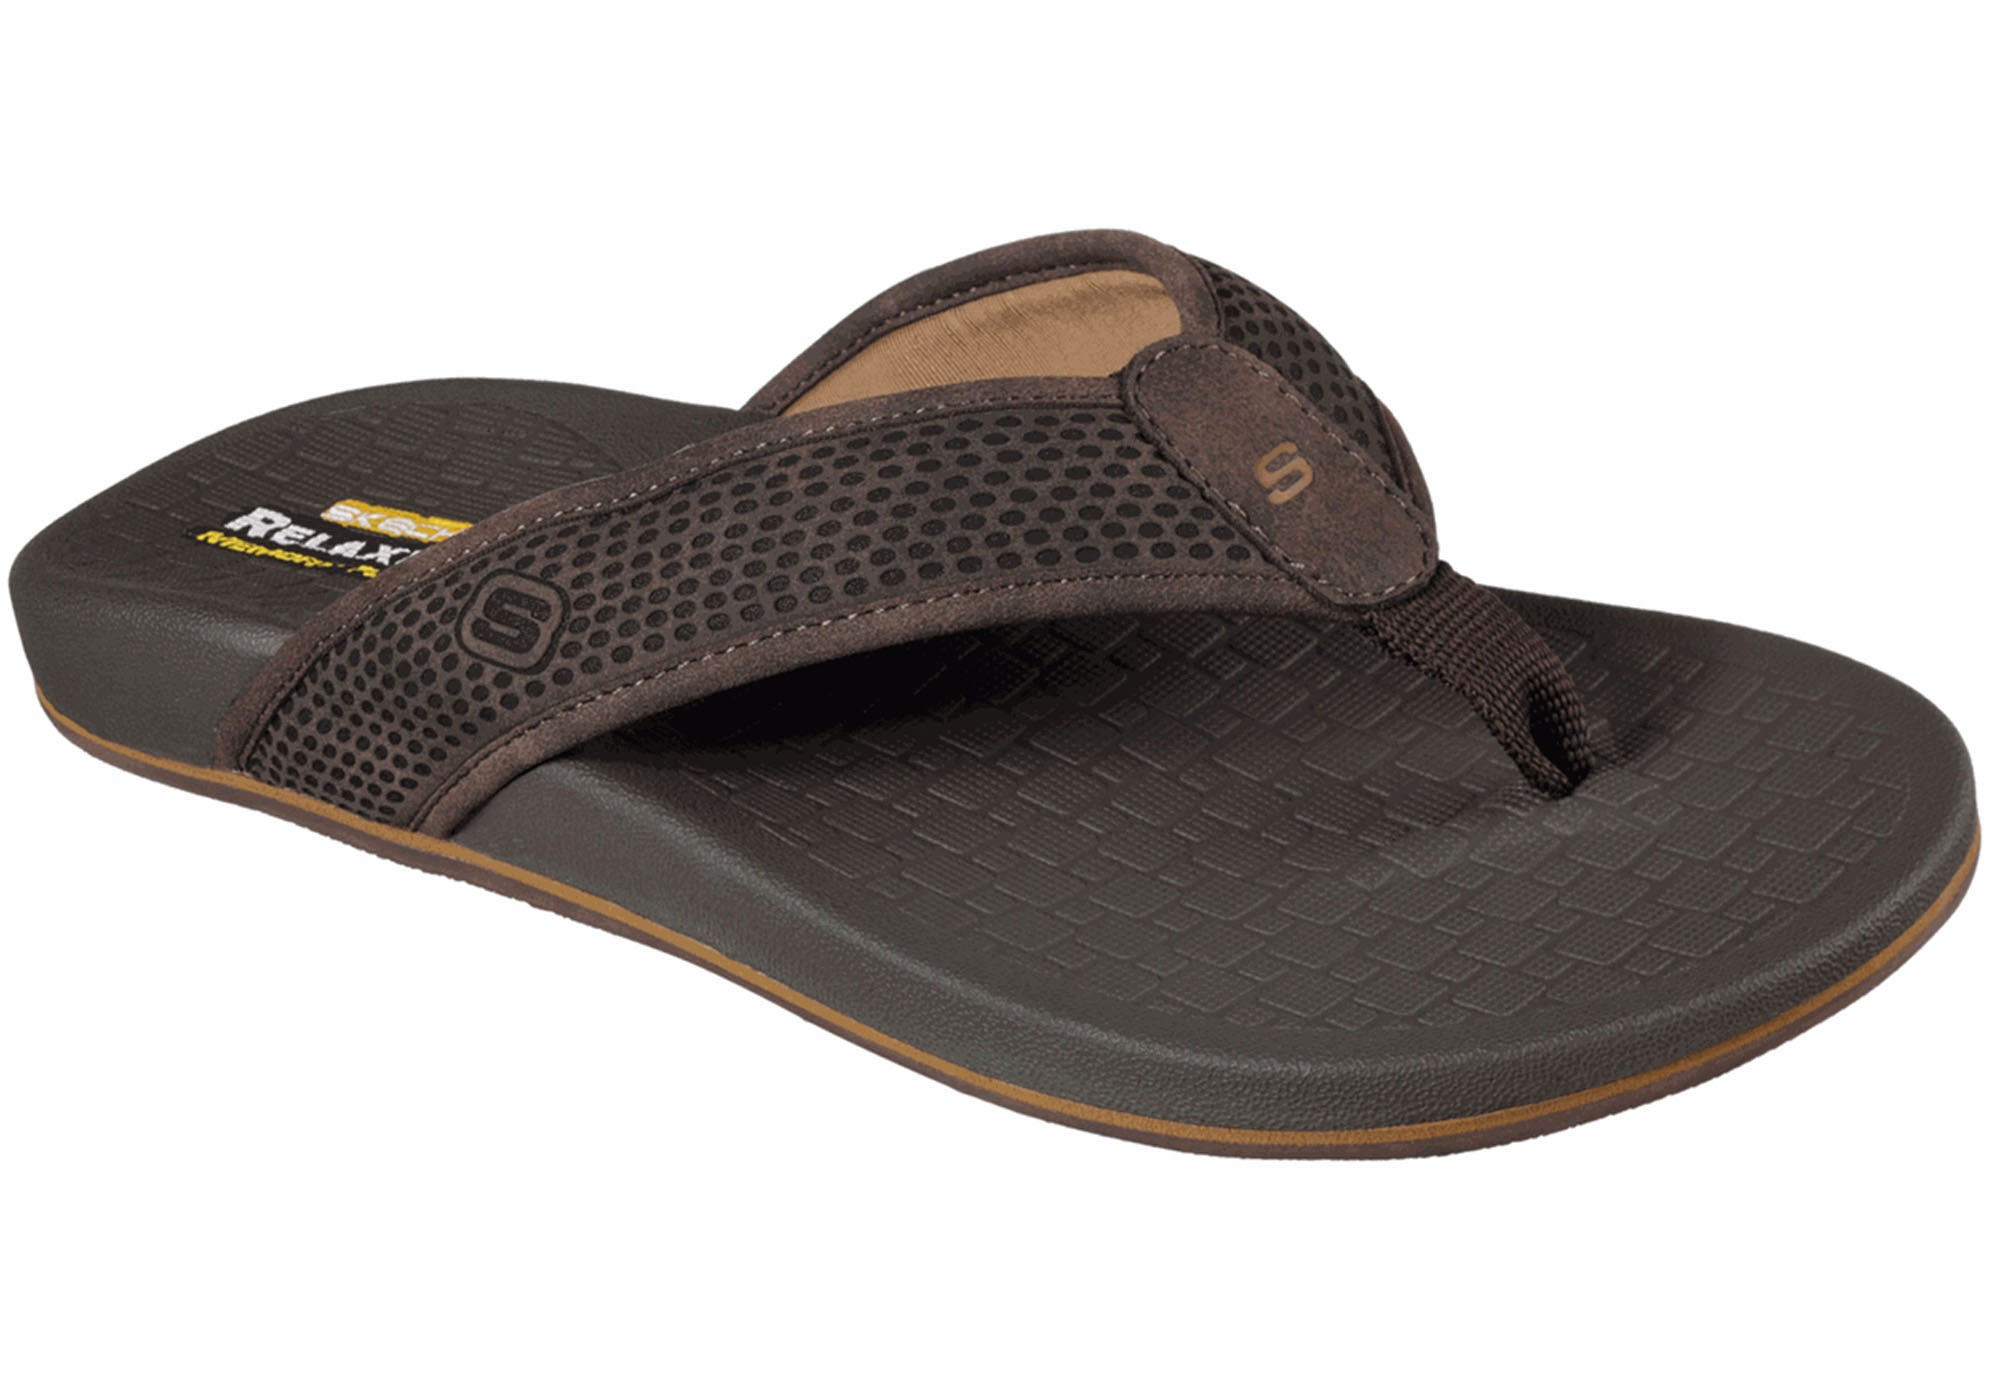 Details about Brand New Skechers Pelem Emiro Mens Relaxed Fit Memory Foam Comfortable Thongs